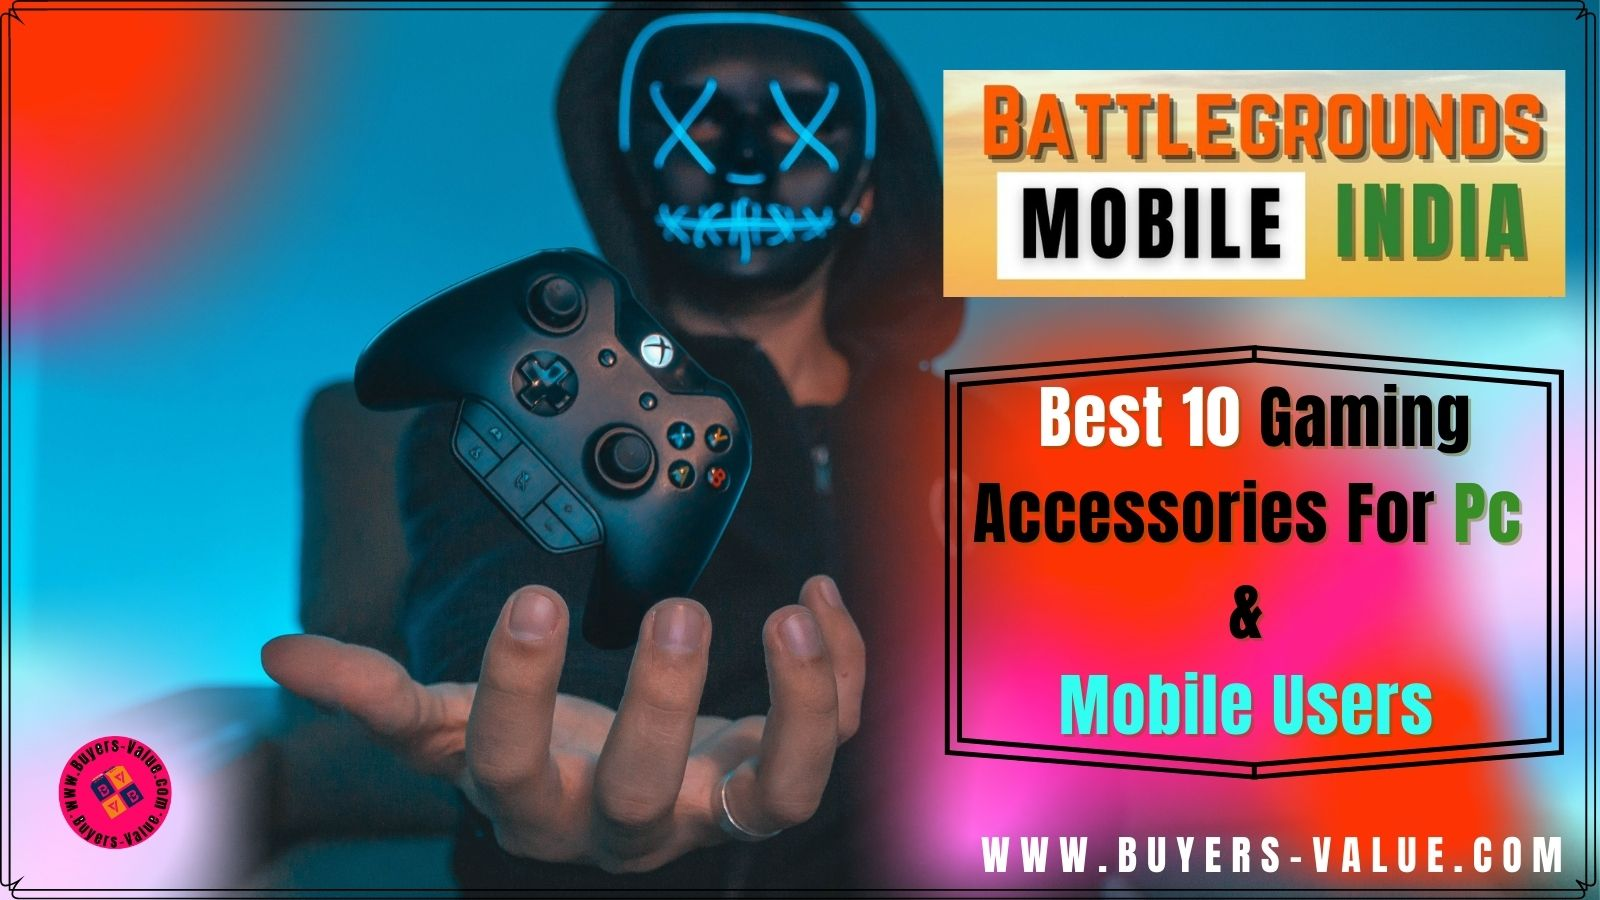 Gaming Accessories For Battleground Mobile